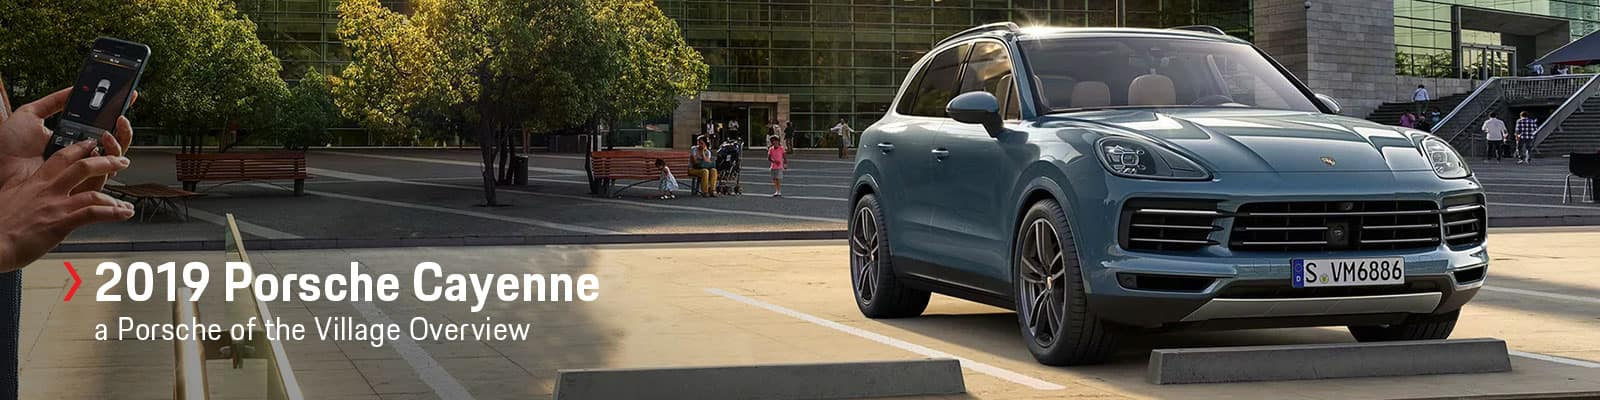 2019 Porsche Cayenne Model Overview at Porsche of the Village